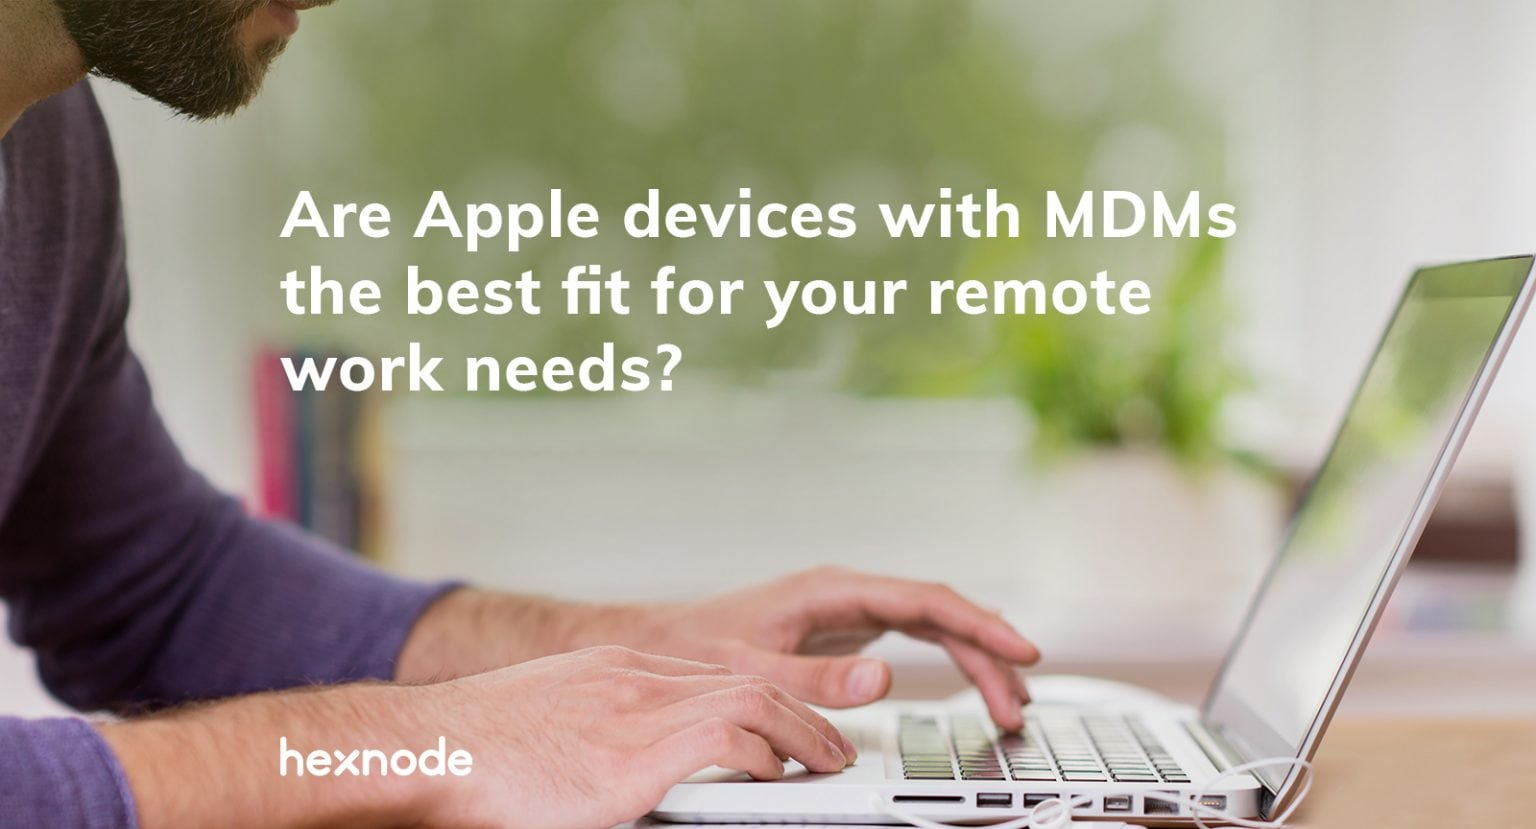 Hexnode: Remote work is the new normal. Is your organization making it as safe and productive as possible?